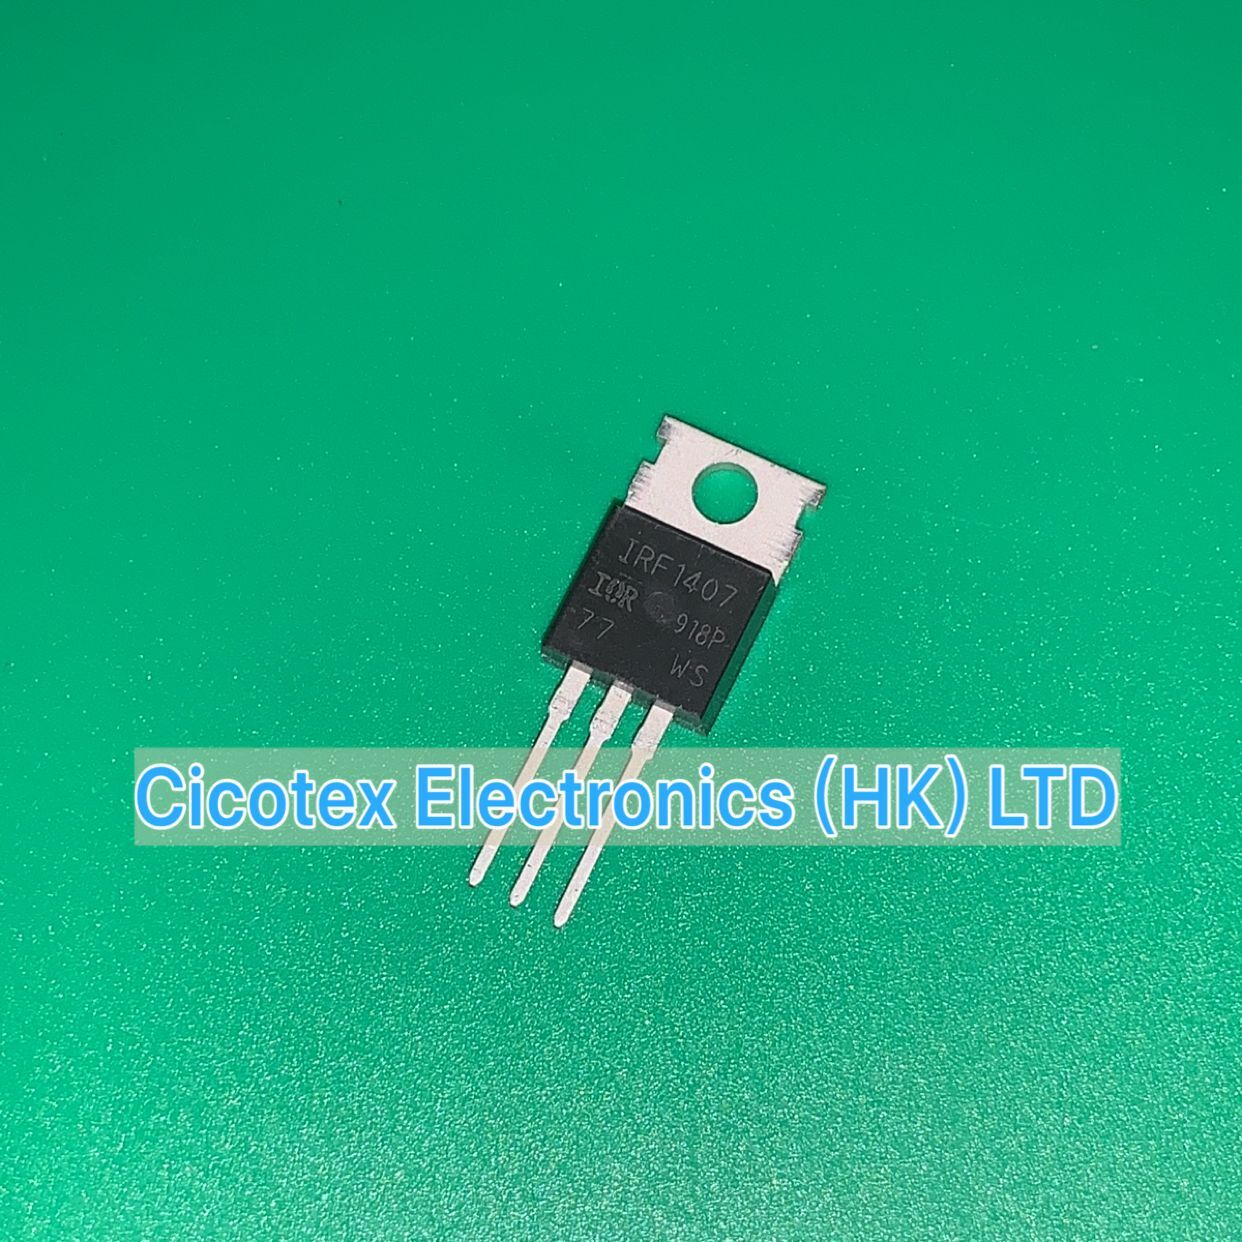 10pcs/lot IRF1407 PBF TO220AB IRF1407PBF IRF 1407 MOSFET N-CH 75V 130A TO-220AB 1407PBF